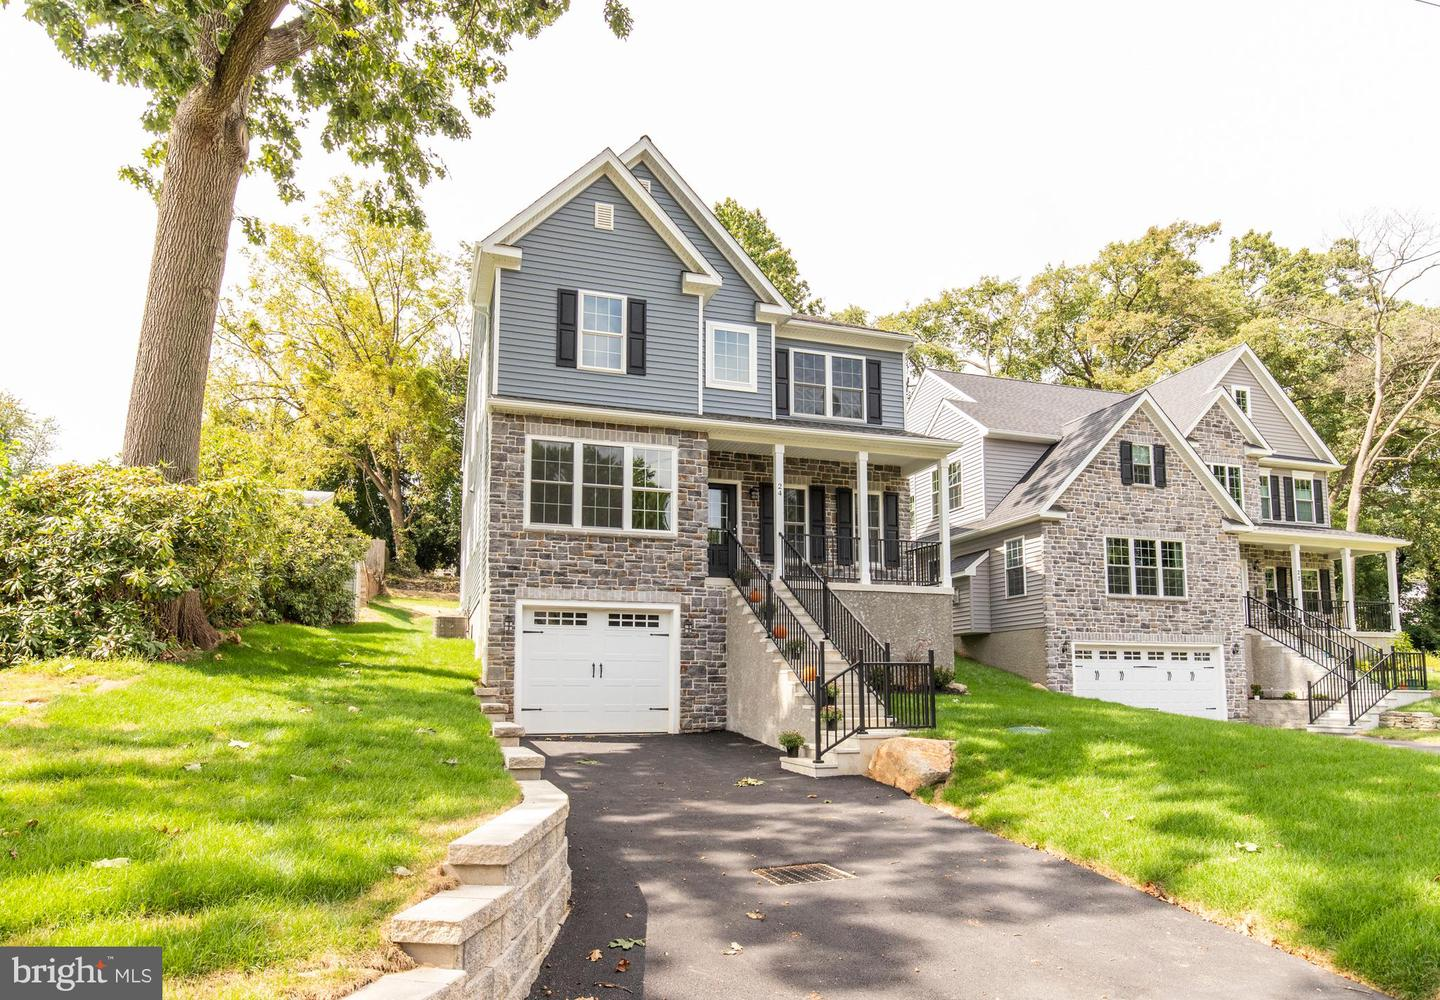 24 Oakland Road Broomall, PA 19008